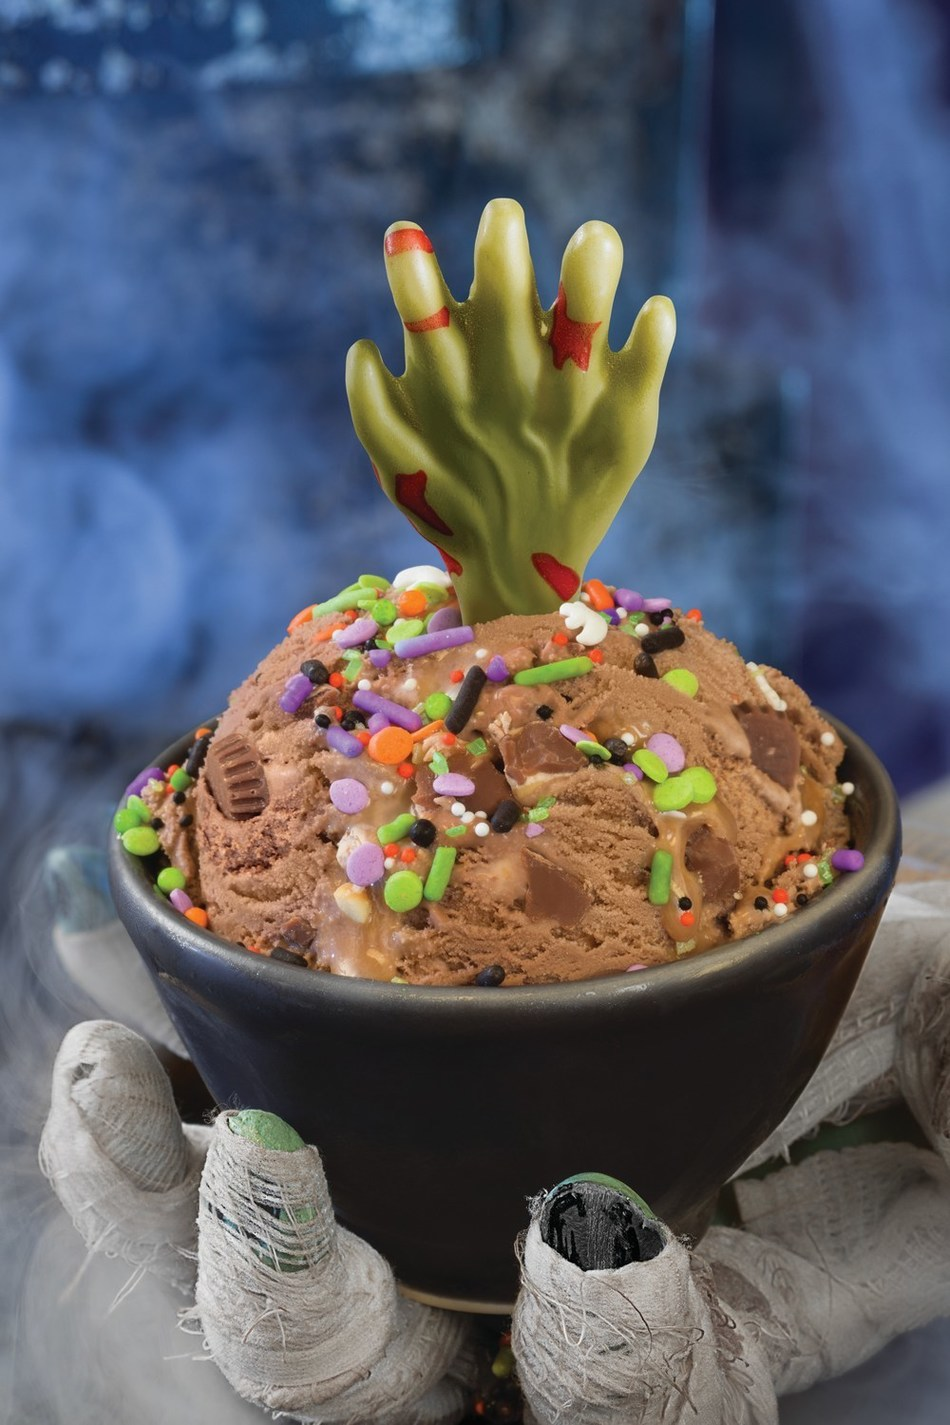 Baskin-Robbins' Fright Night Scoop is a scoop of the Candy Mashup Flavor of the Month ice cream topped with a Halloween sprinkle mix and a white chocolate zombie hand. For more information, visit www.baskinrobbins.com.